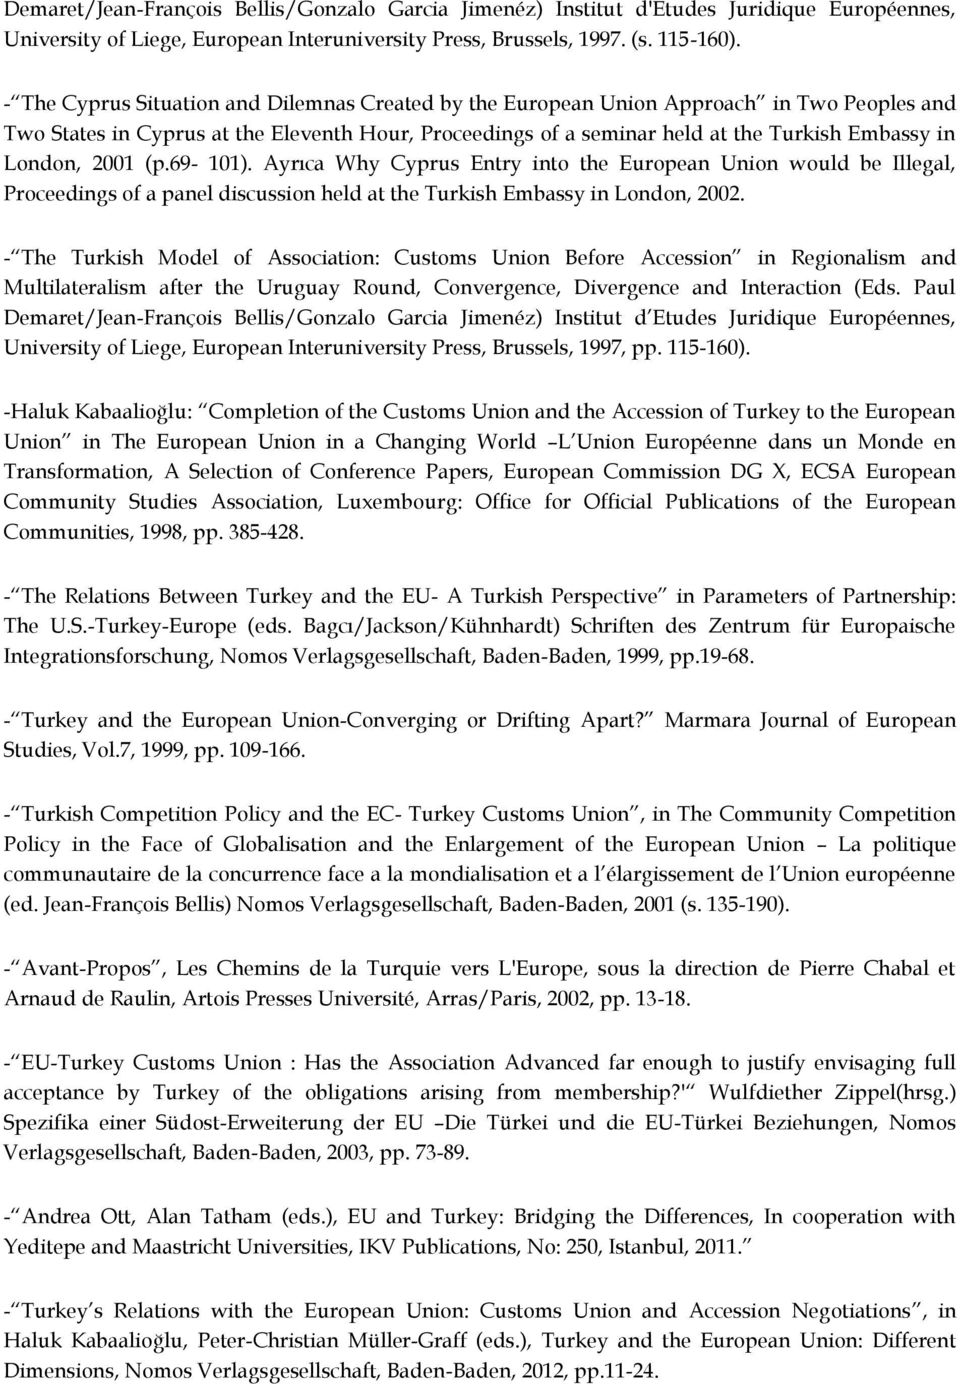 London, 2001 (p.69-101). Ayrıca Why Cyprus Entry into the European Union would be Illegal, Proceedings of a panel discussion held at the Turkish Embassy in London, 2002.